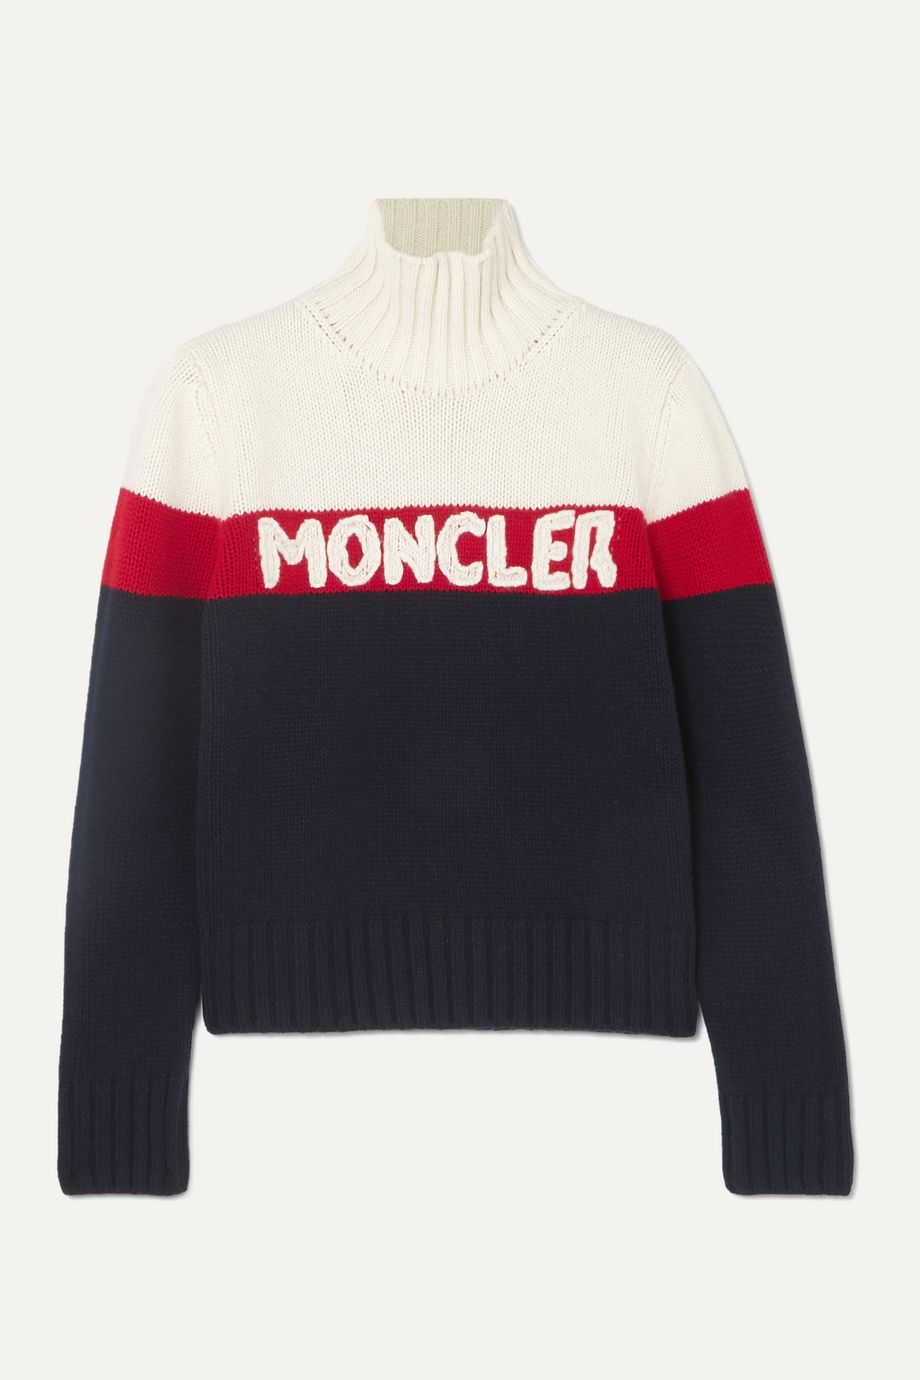 Moncler Wool and cashmere-blend jacquard turtleneck sweater